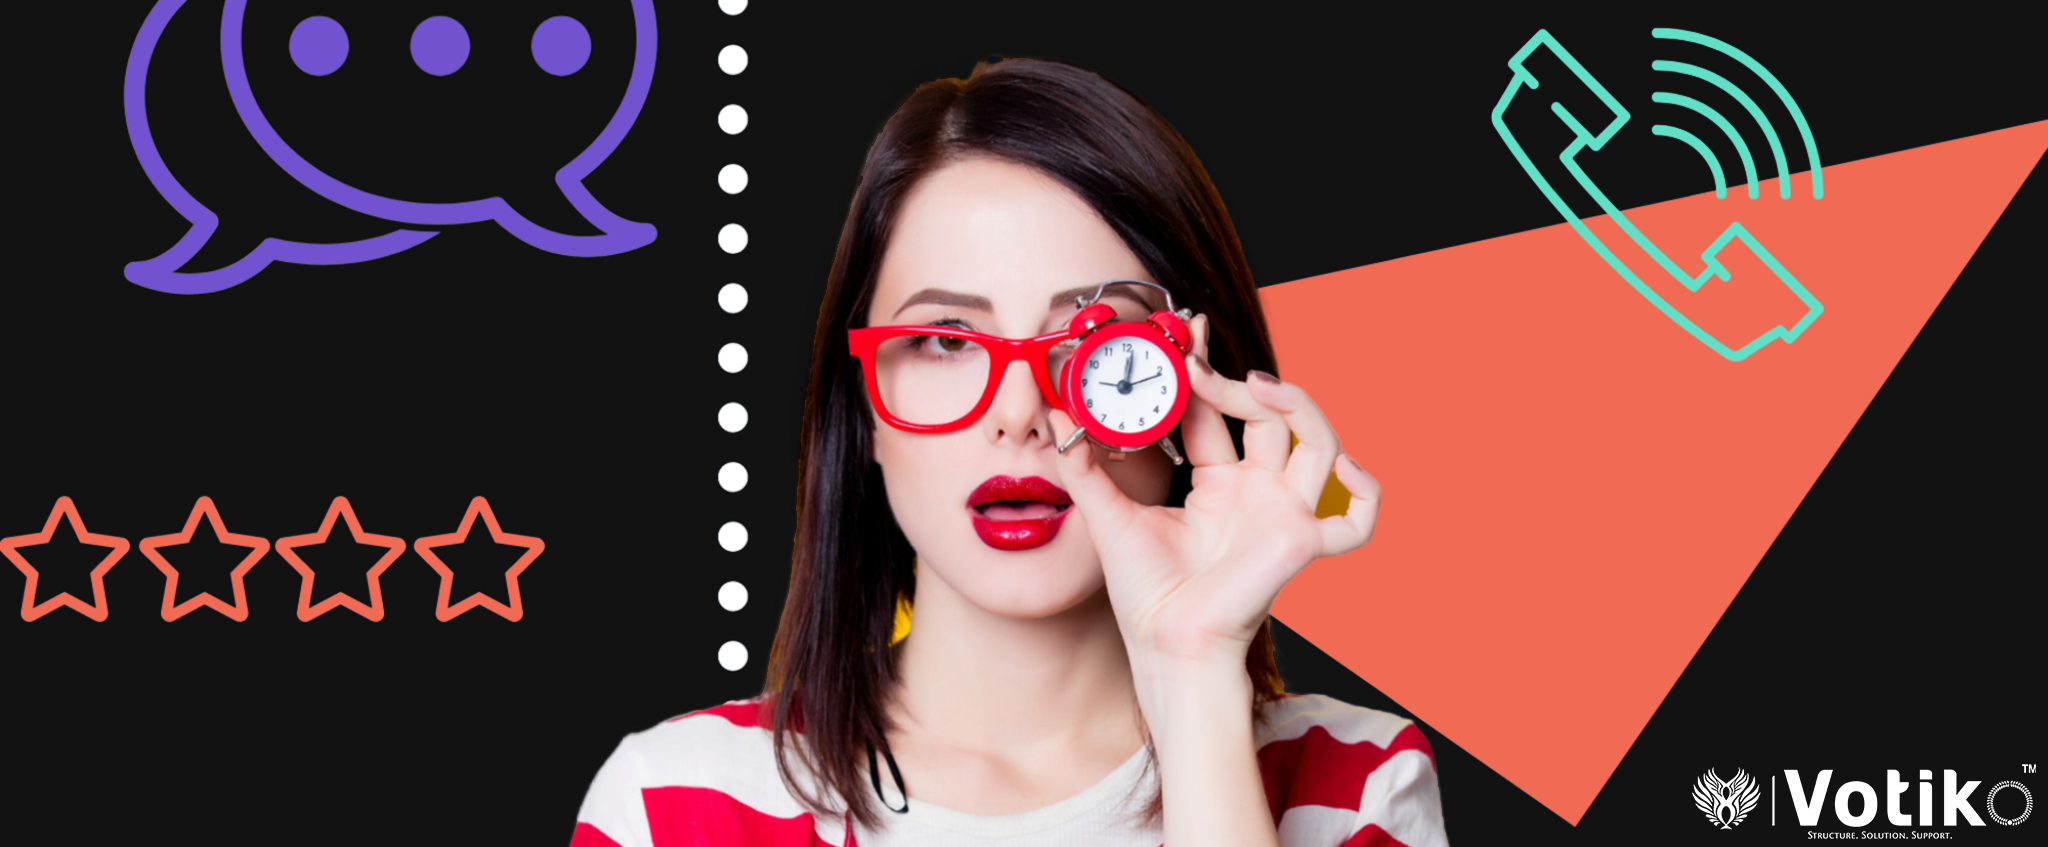 How to Provide Customer Service 24/7 Without Increasing Costs